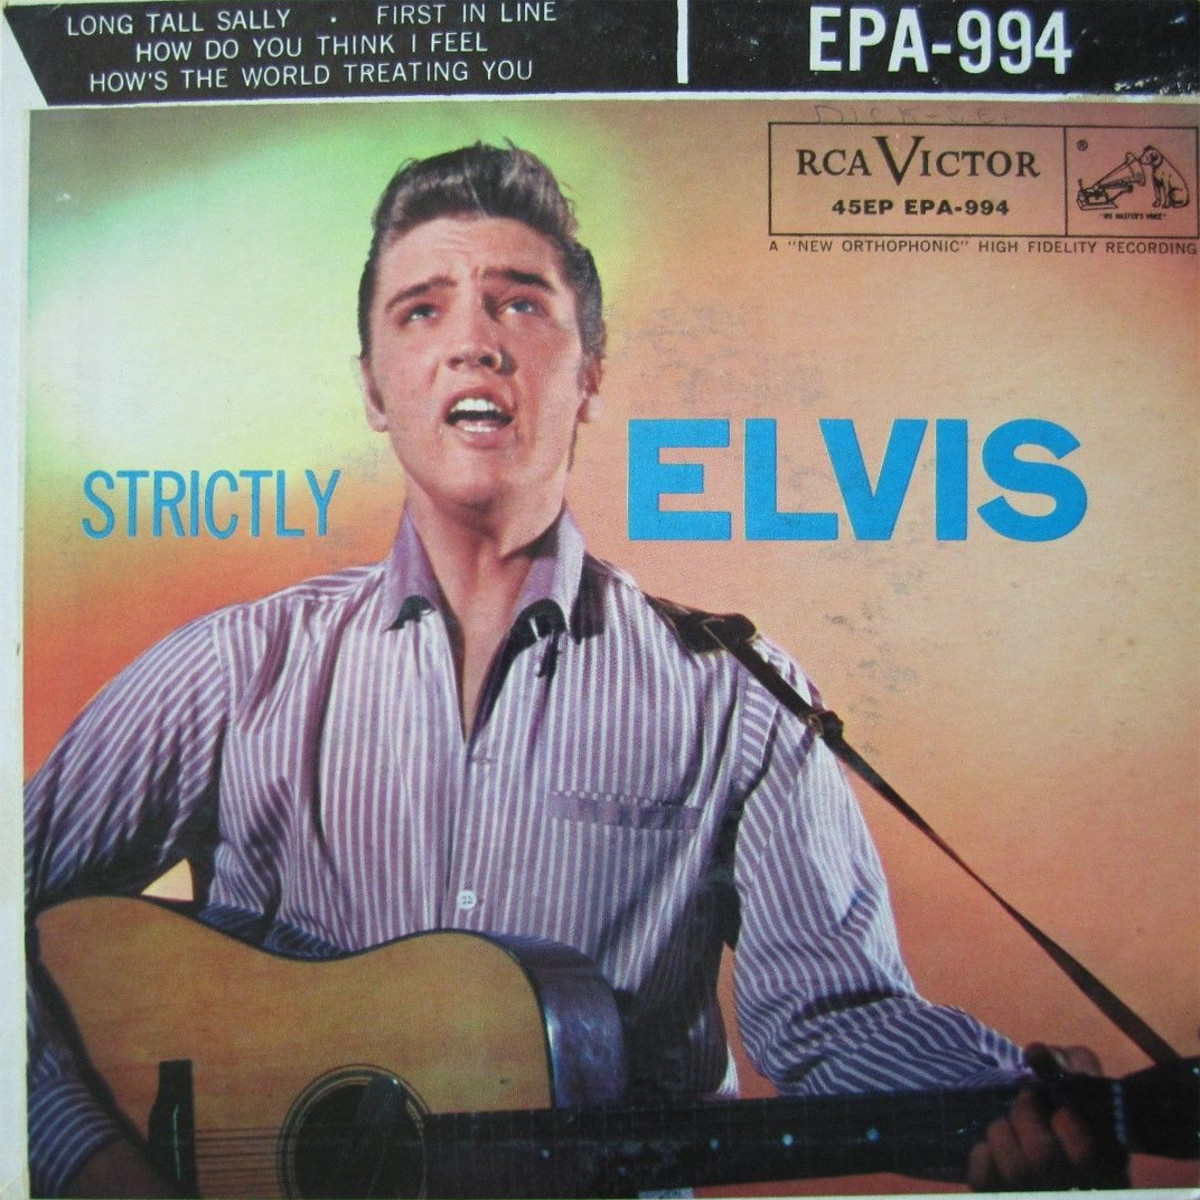 STRICTLY ELVIS 129f0r7a